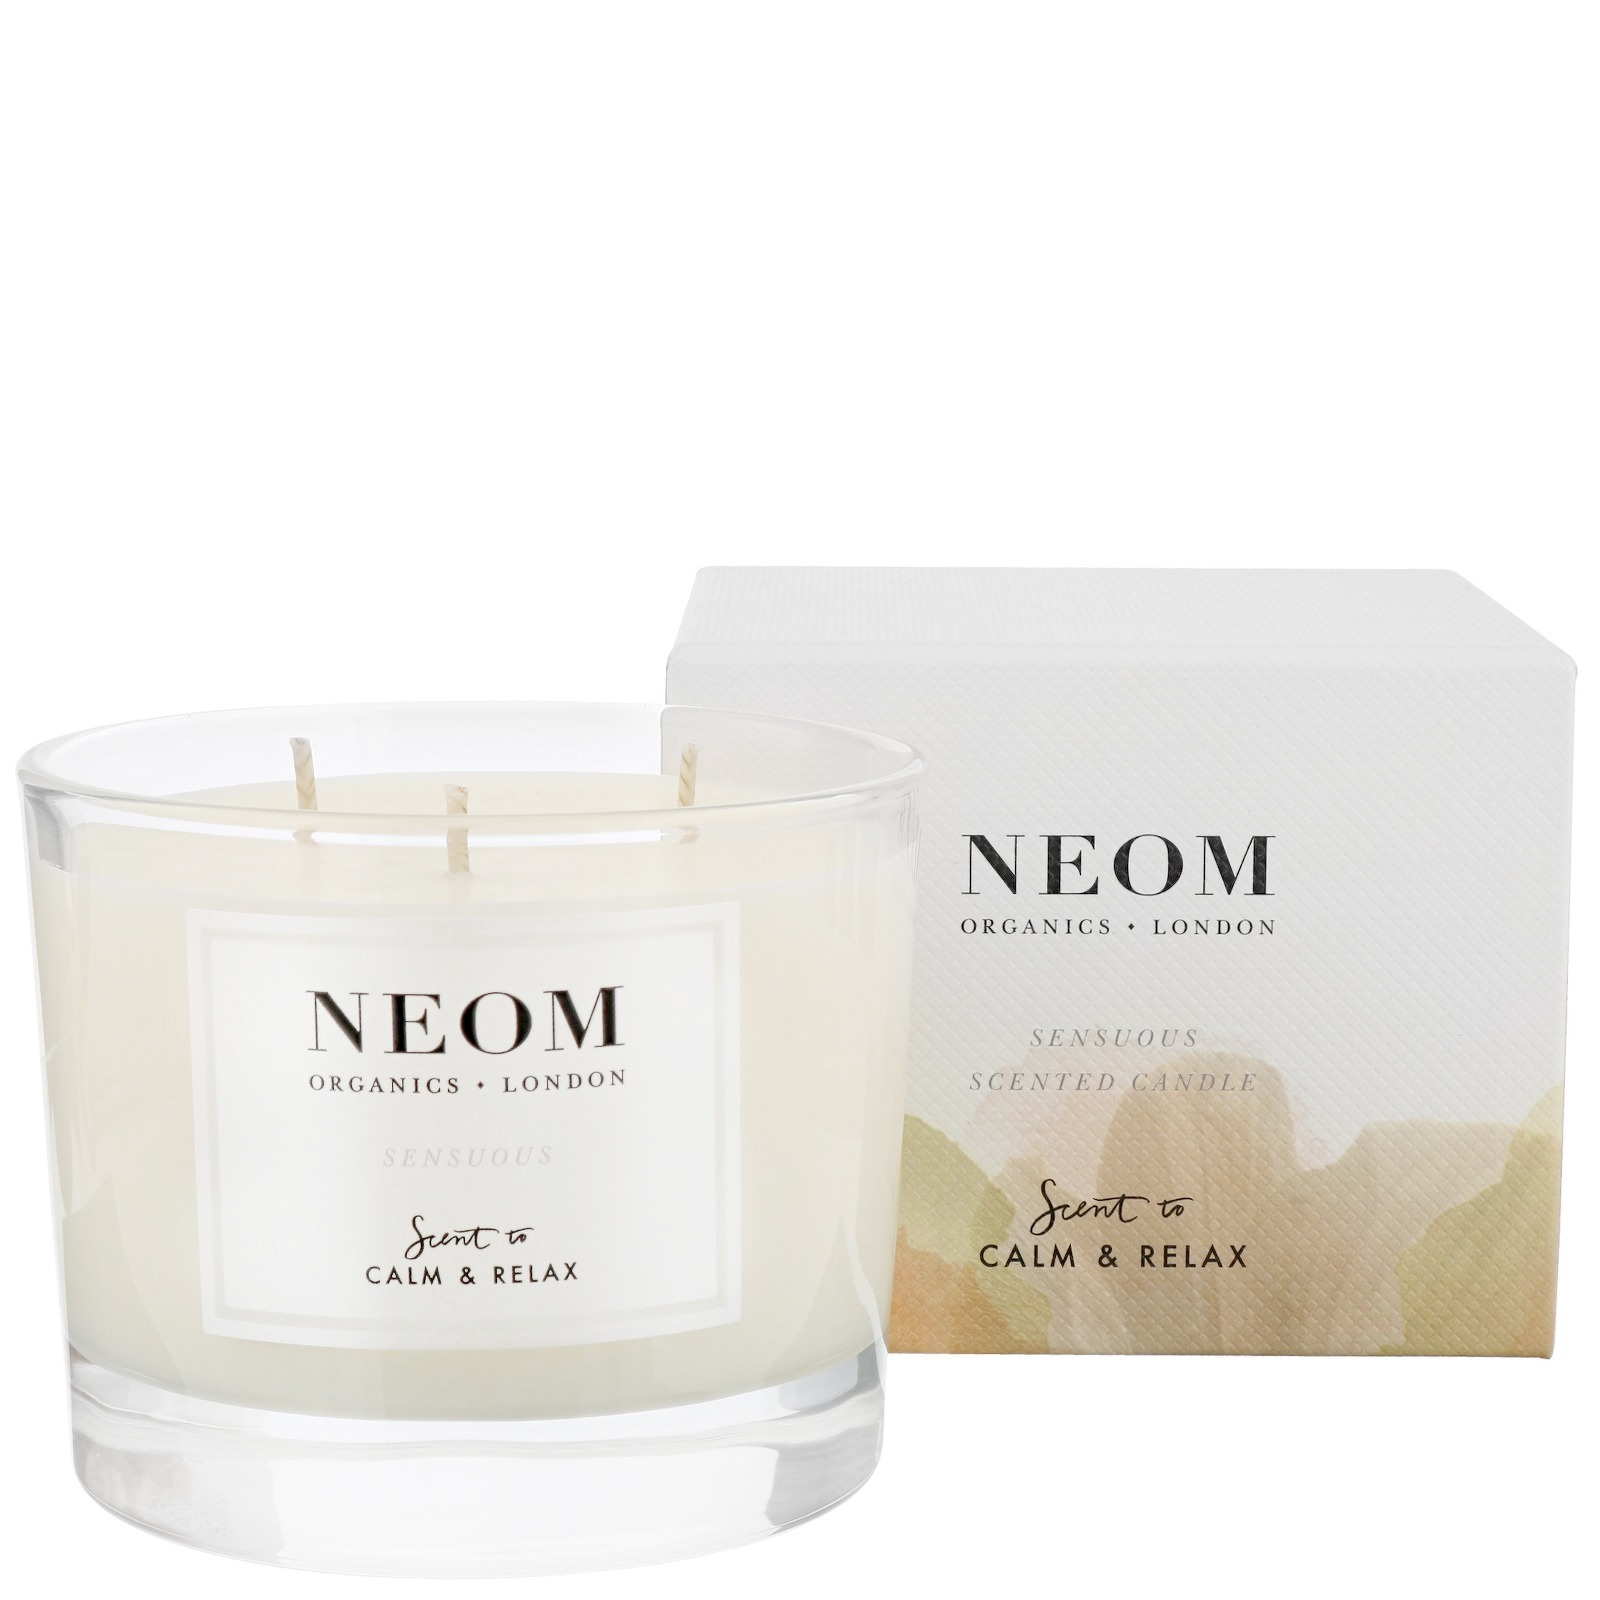 Neom Organics London Scent To Calm & Relax Sensuous Scented Candle (3 Wicks) 420g